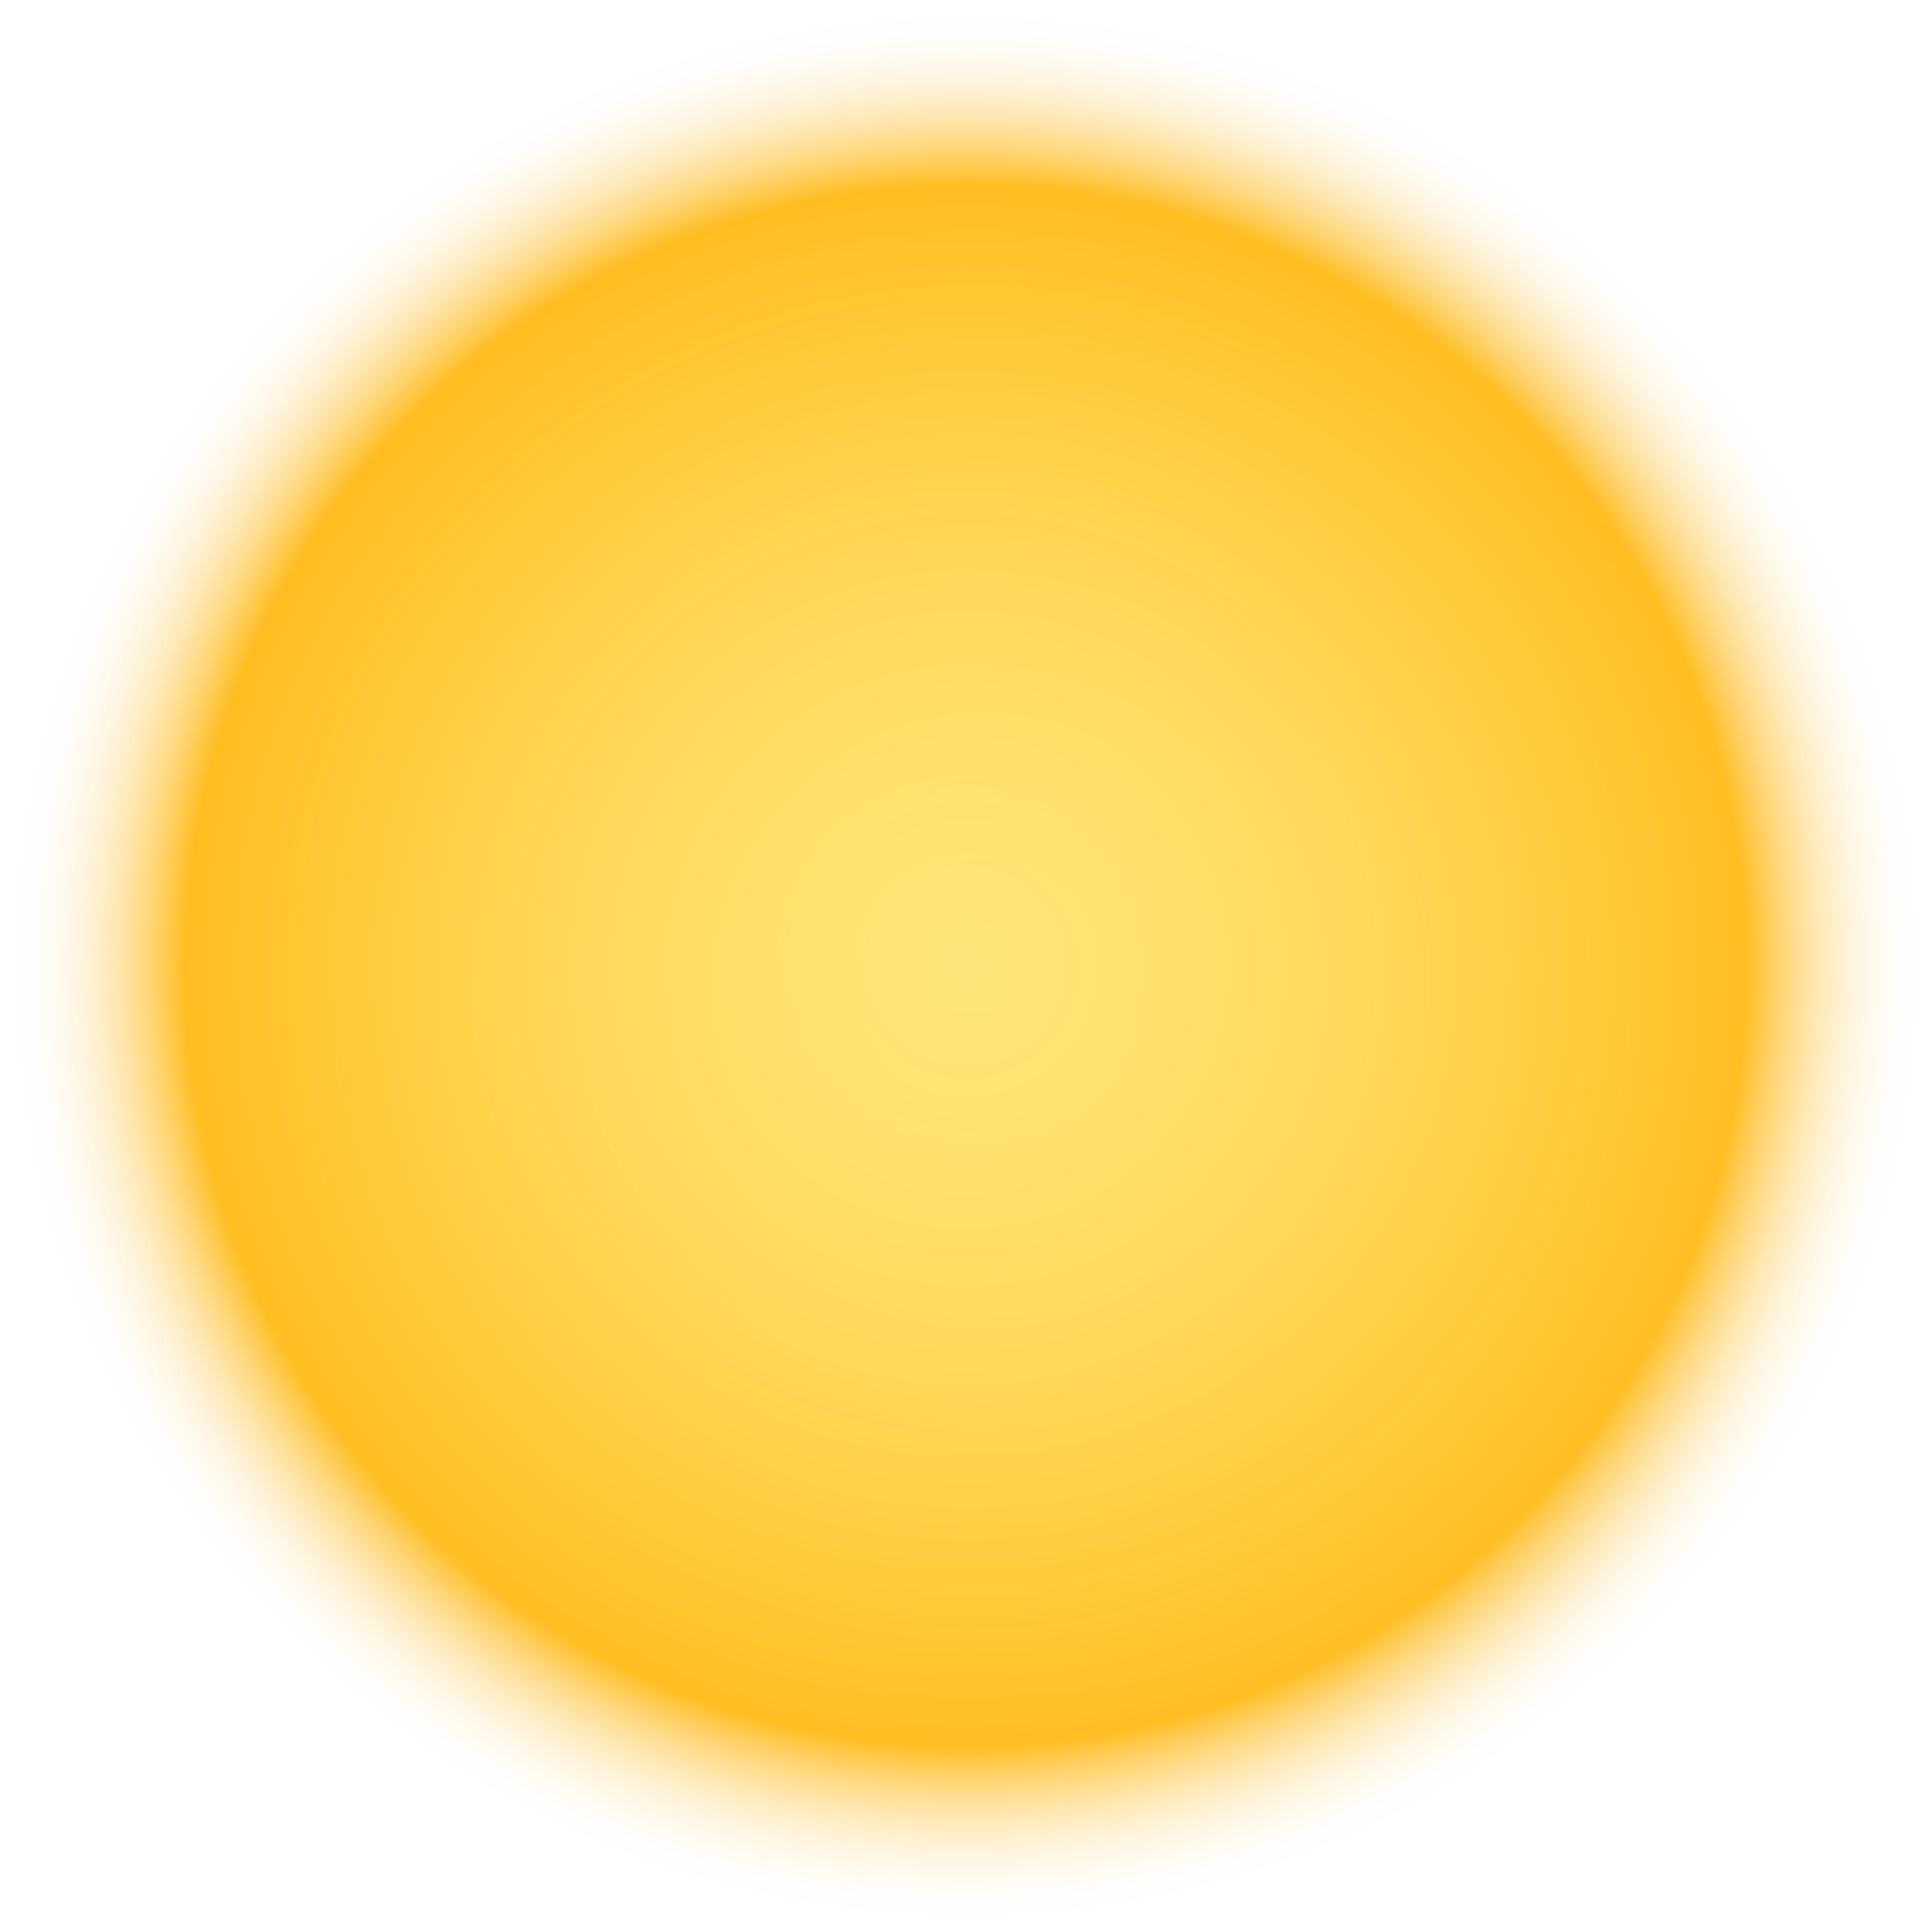 Circle sun clipart image free download Sun PNG Clip Art - Best WEB Clipart image free download